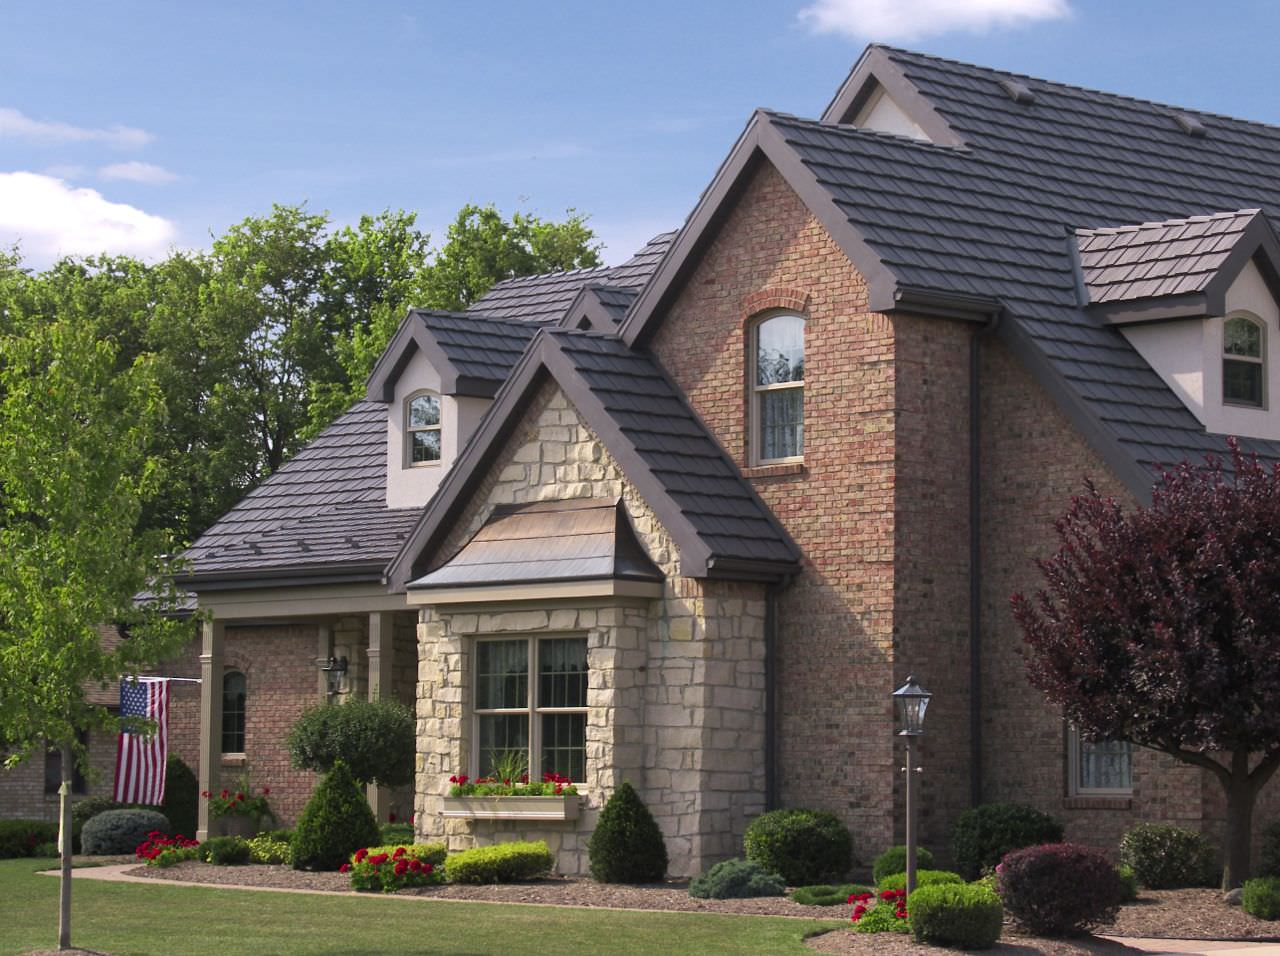 Residential Metal Roofing: New Trends